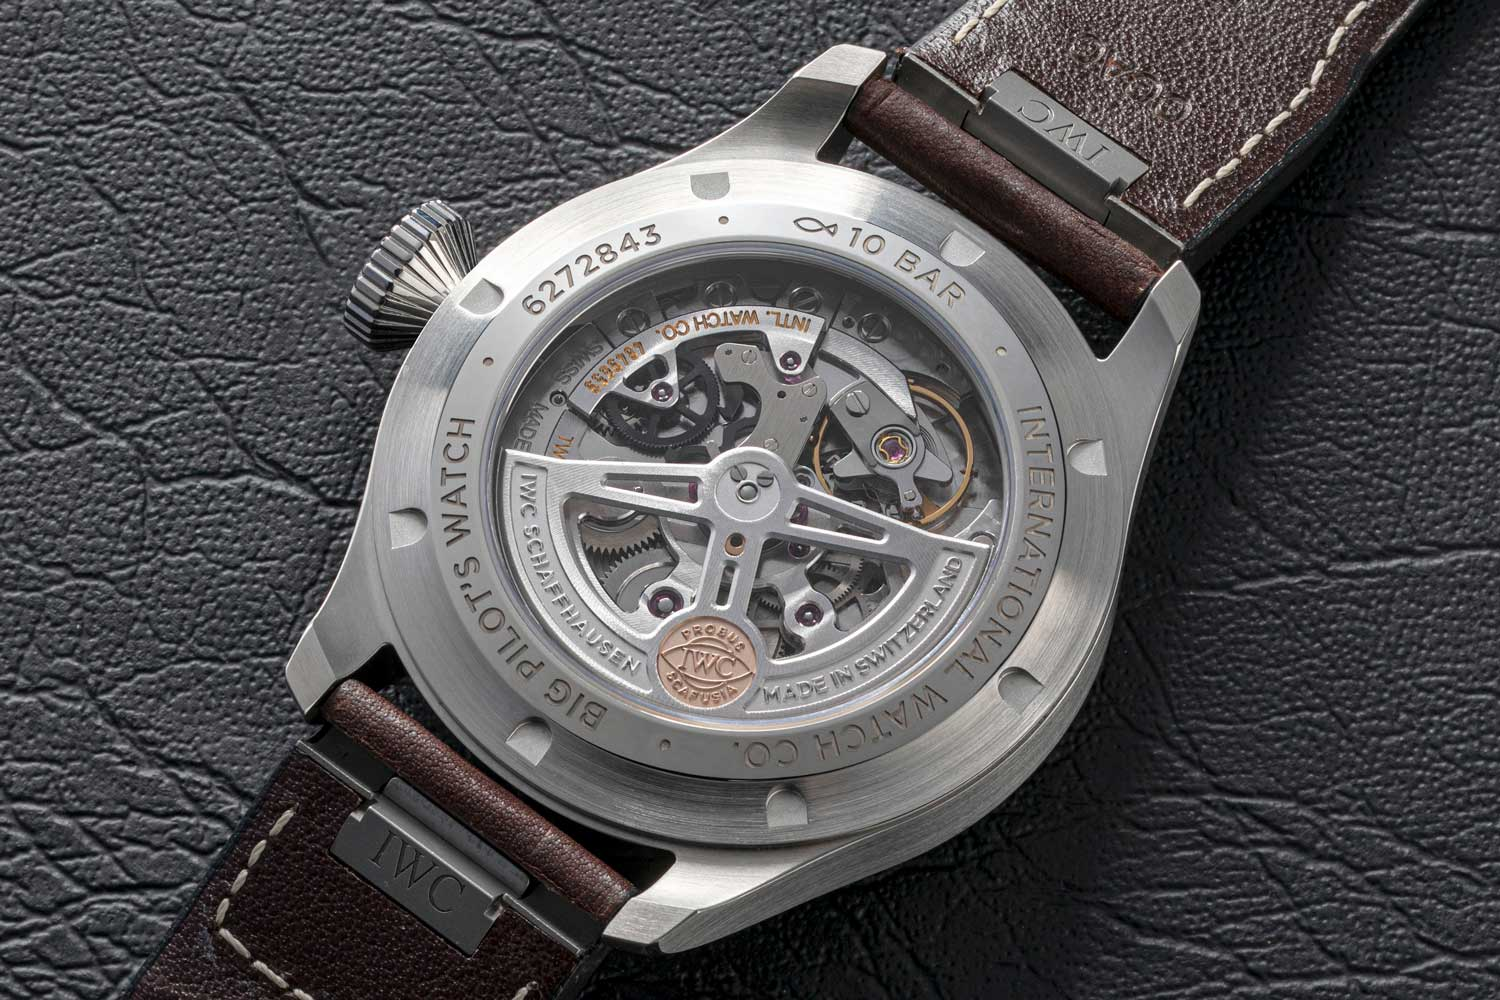 The watch is powered by calibre 82100, which uses zirconium oxide ceramic for the automatic wheel and the pawls that mesh with it. (©Revolution)